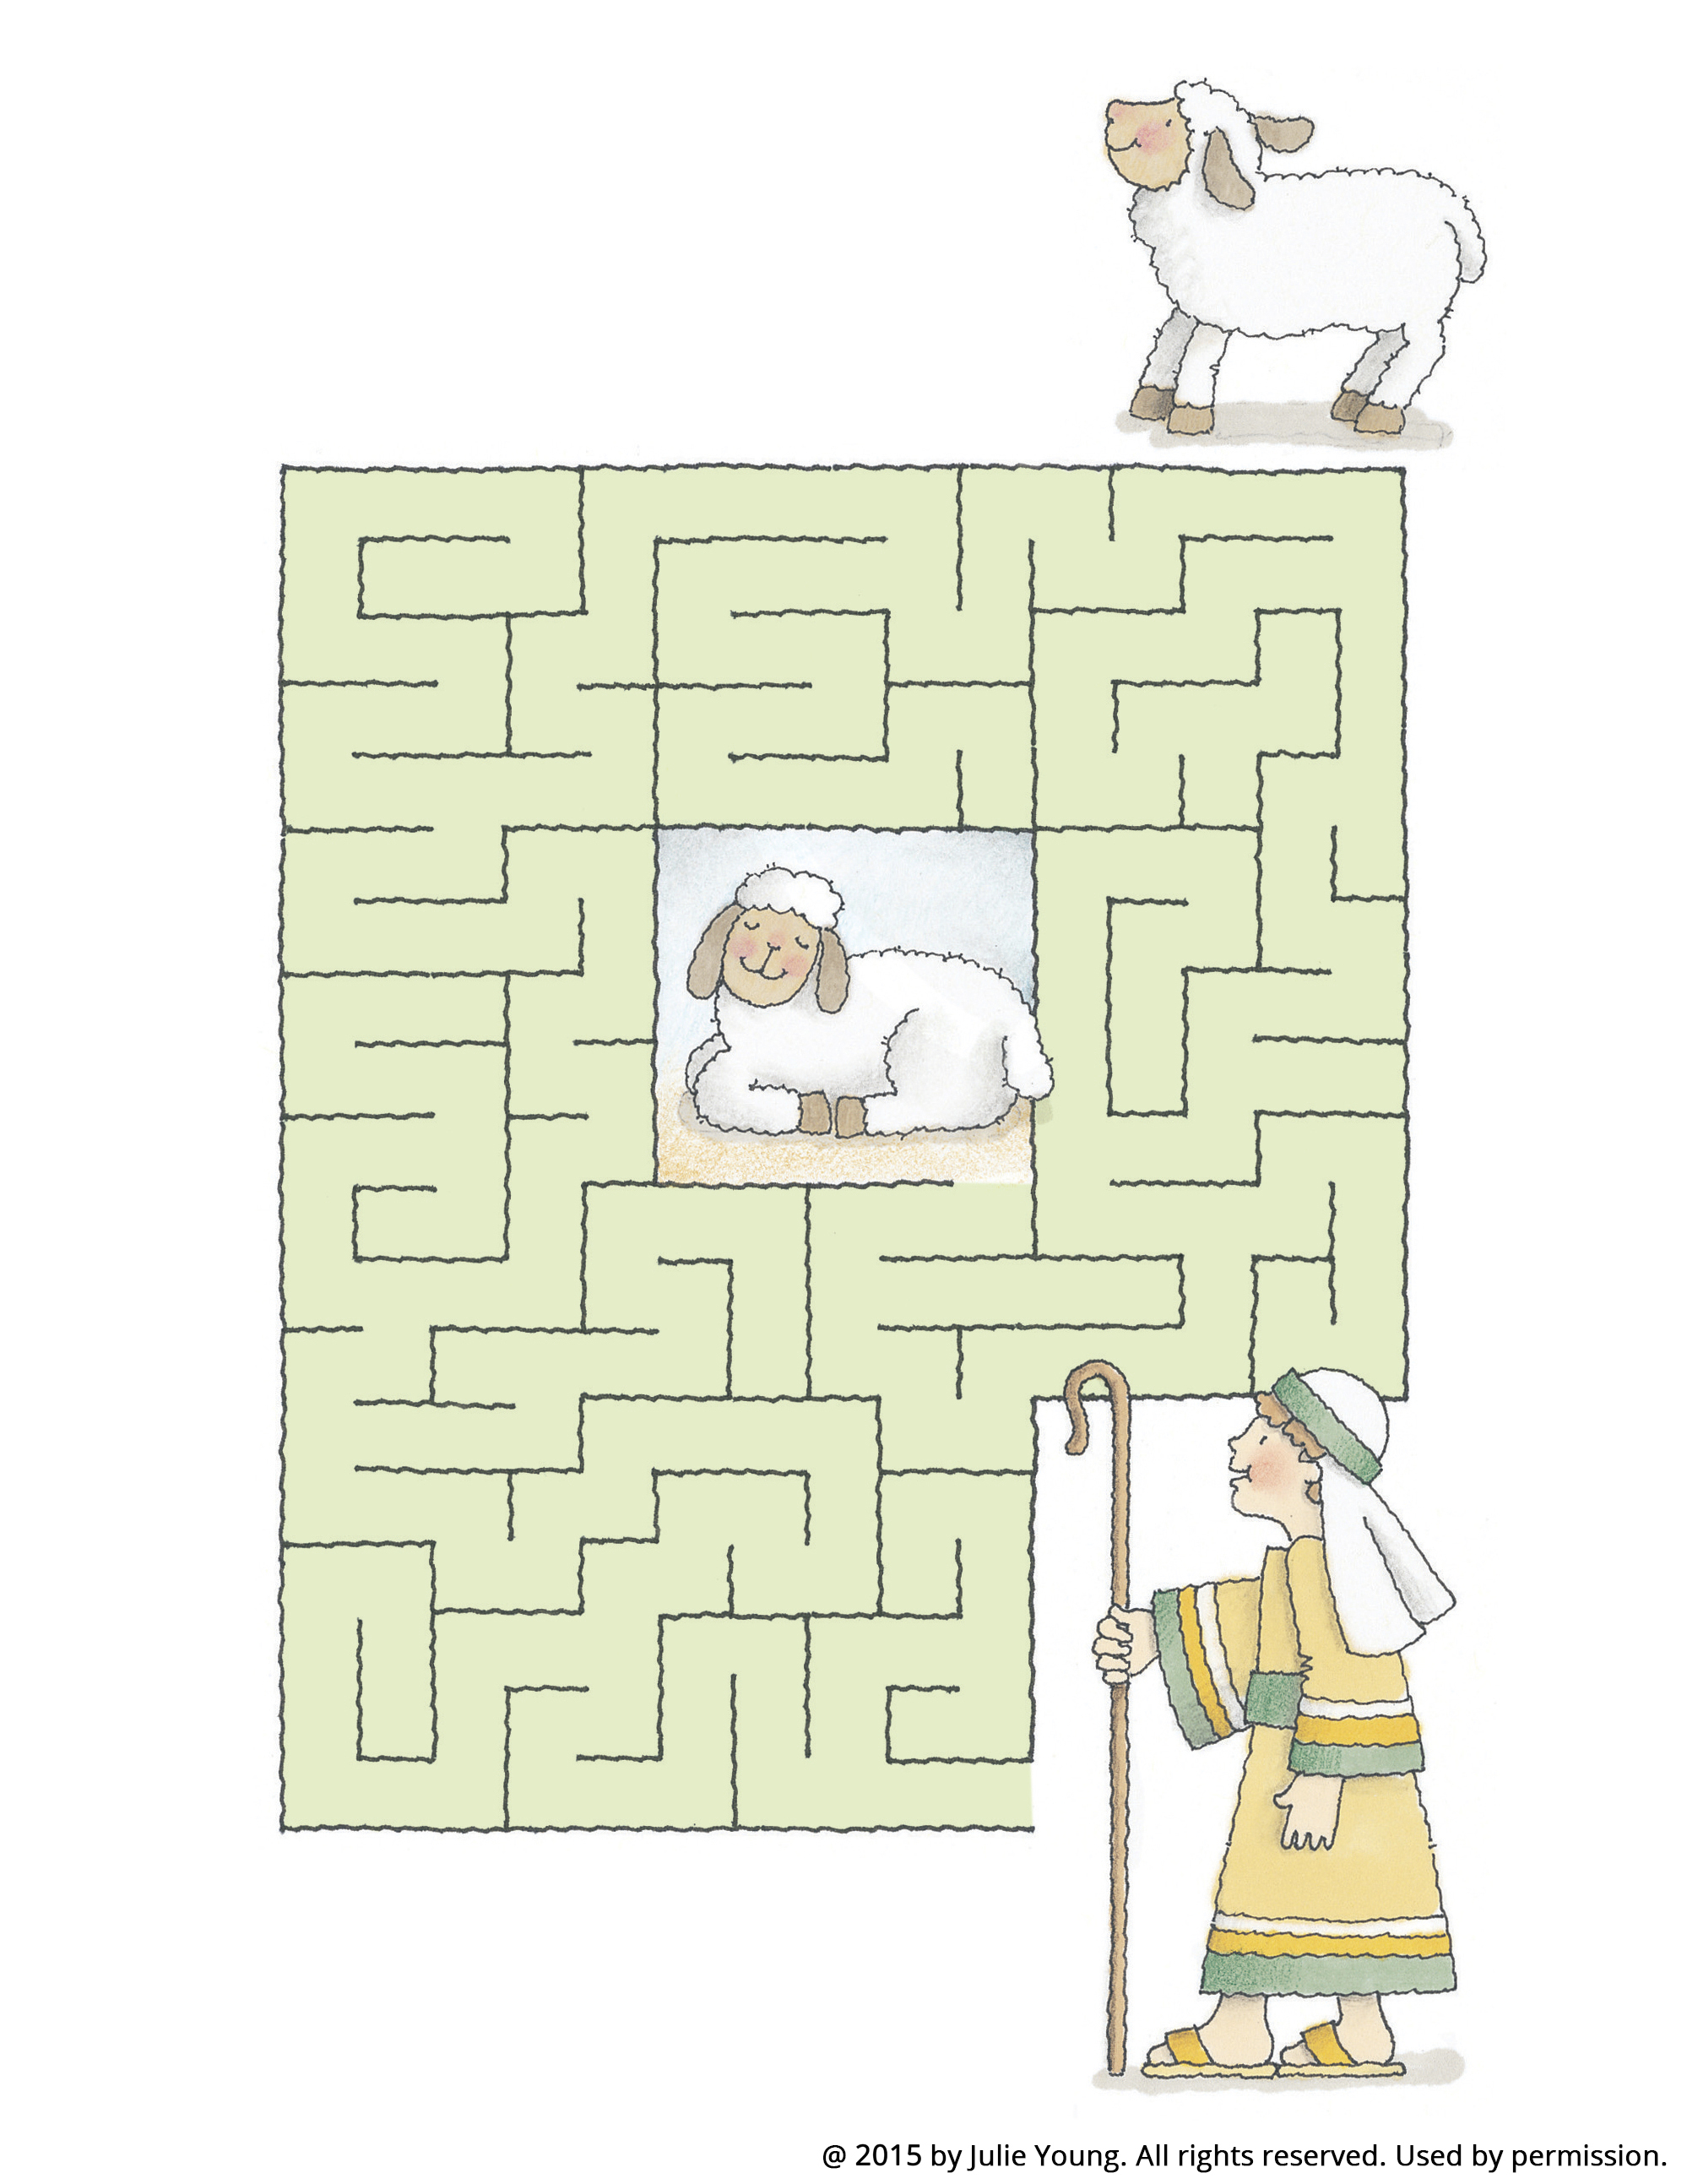 A maze starting with a shepherd boy and leading to a white sheep.